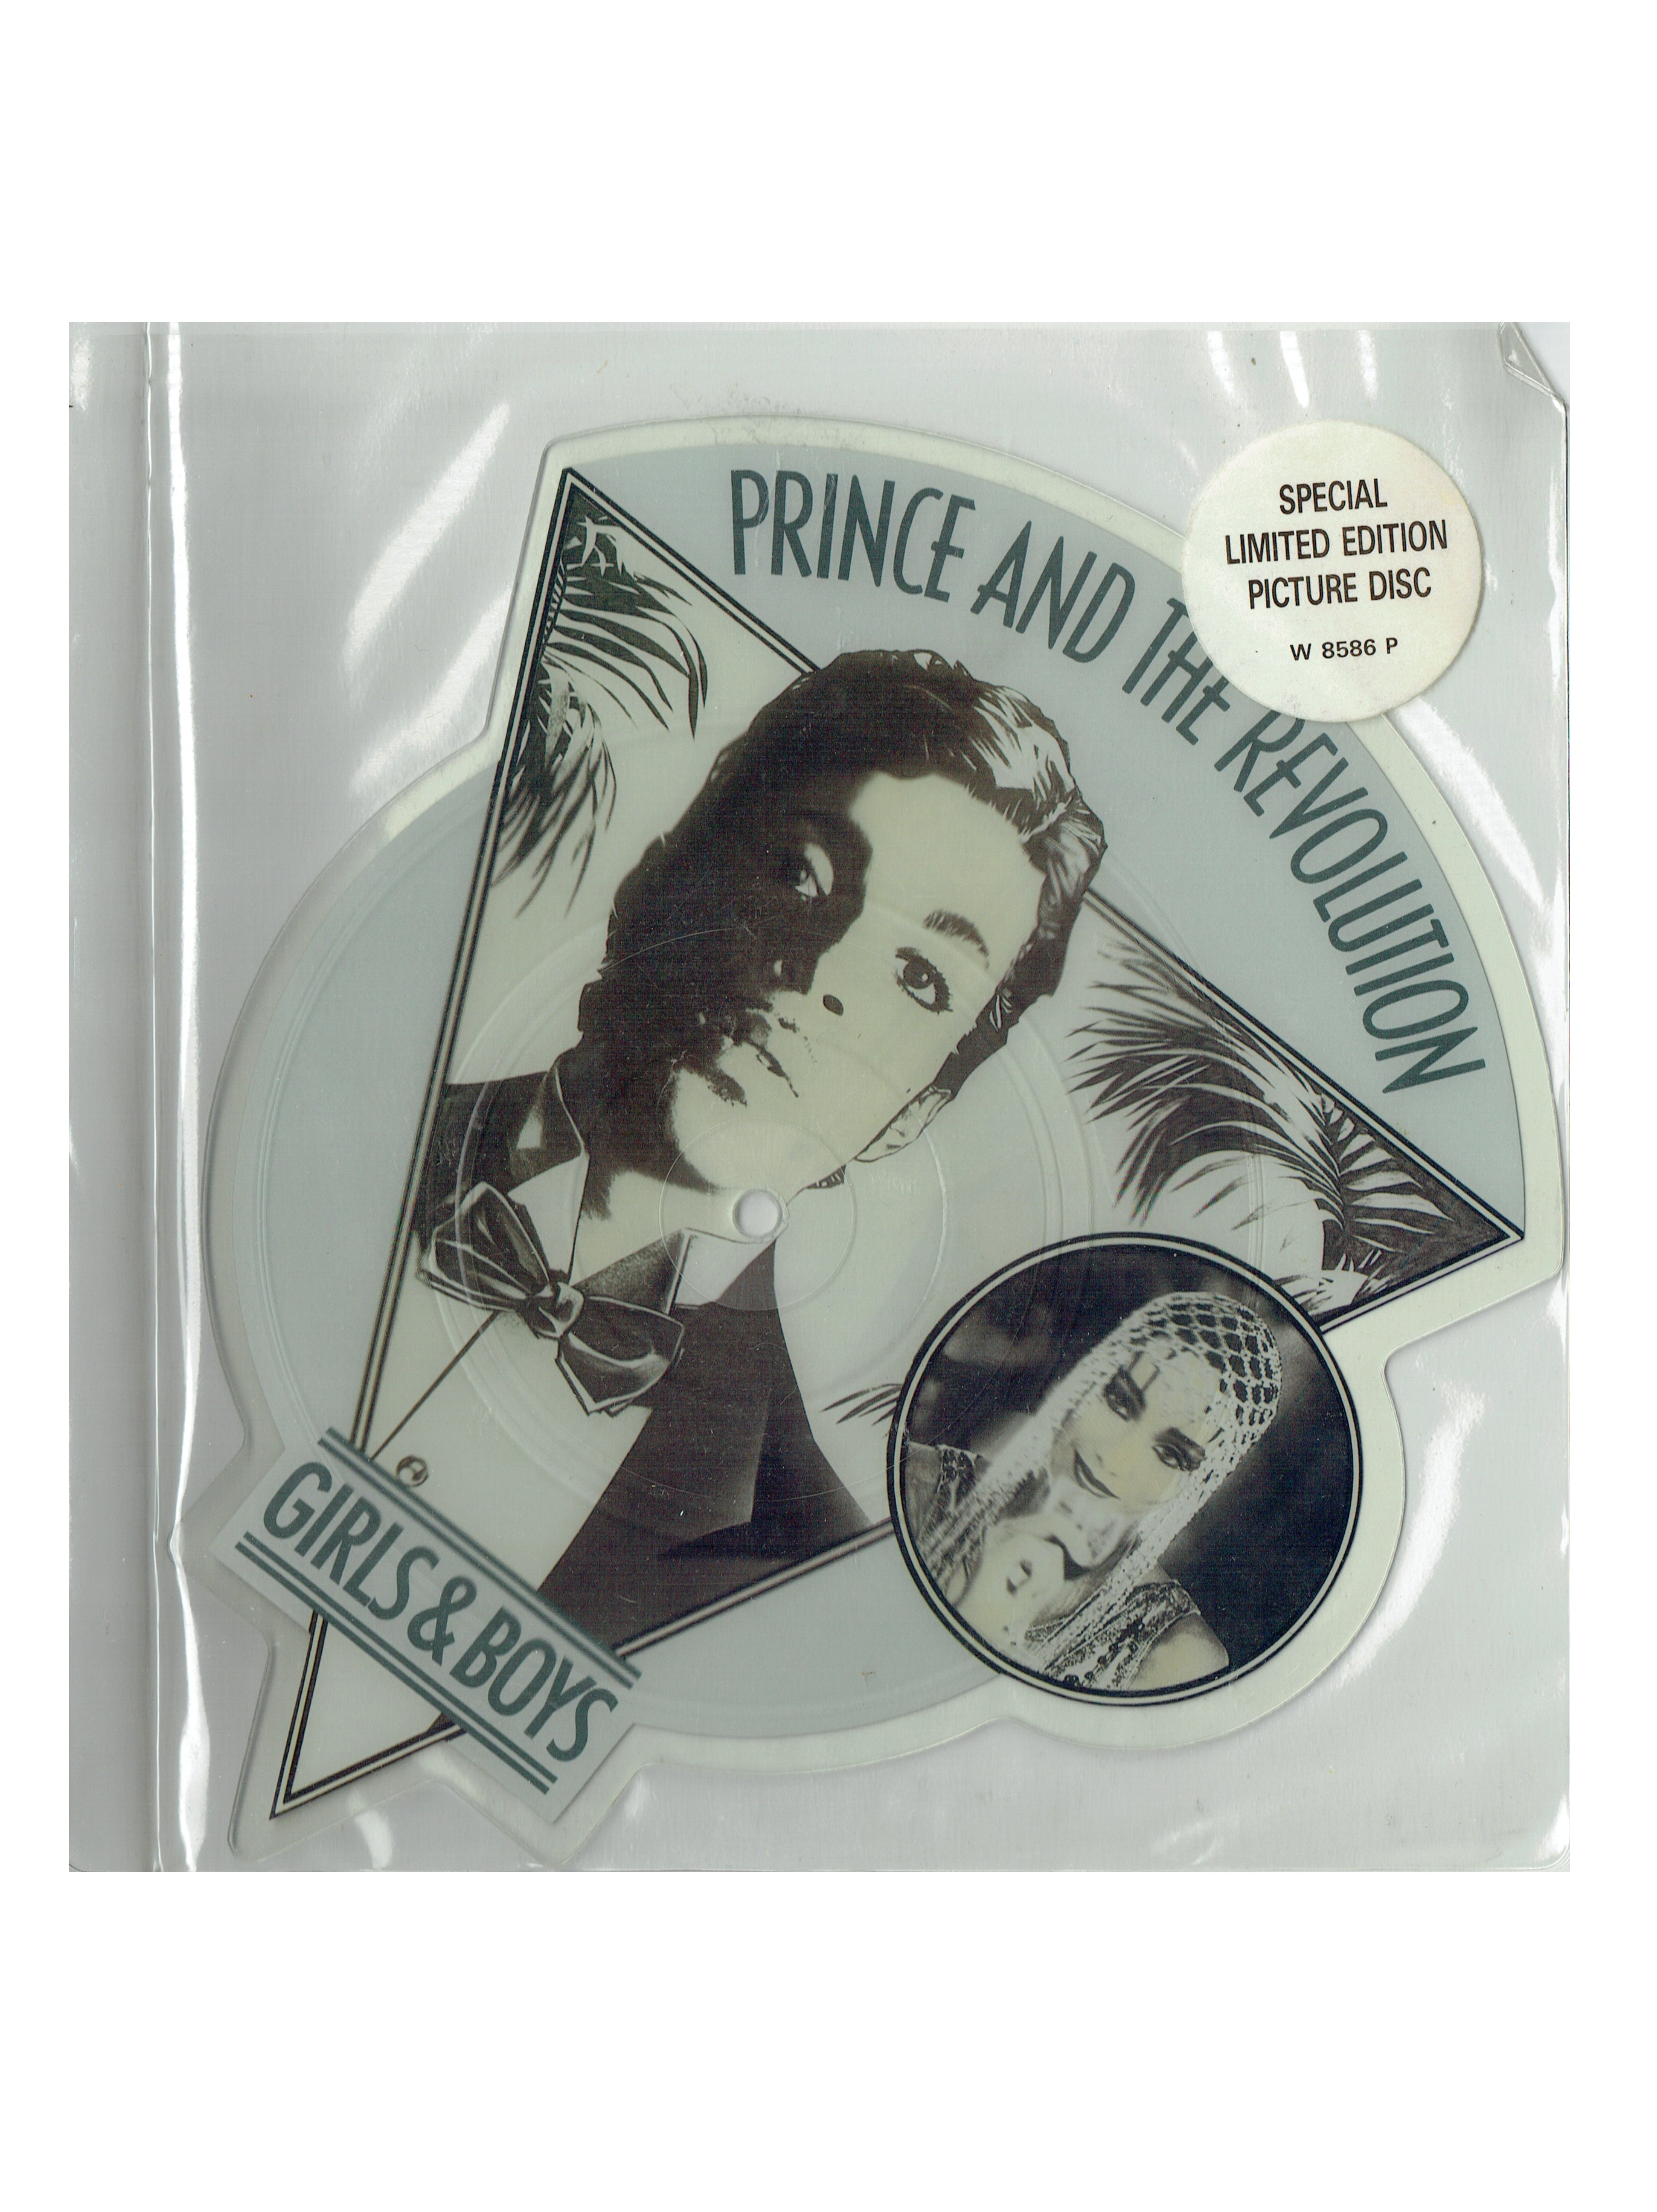 Prince Girls & Boys/Under The Cherry Moon 7 Inch UK Picture Disc With Hype TR